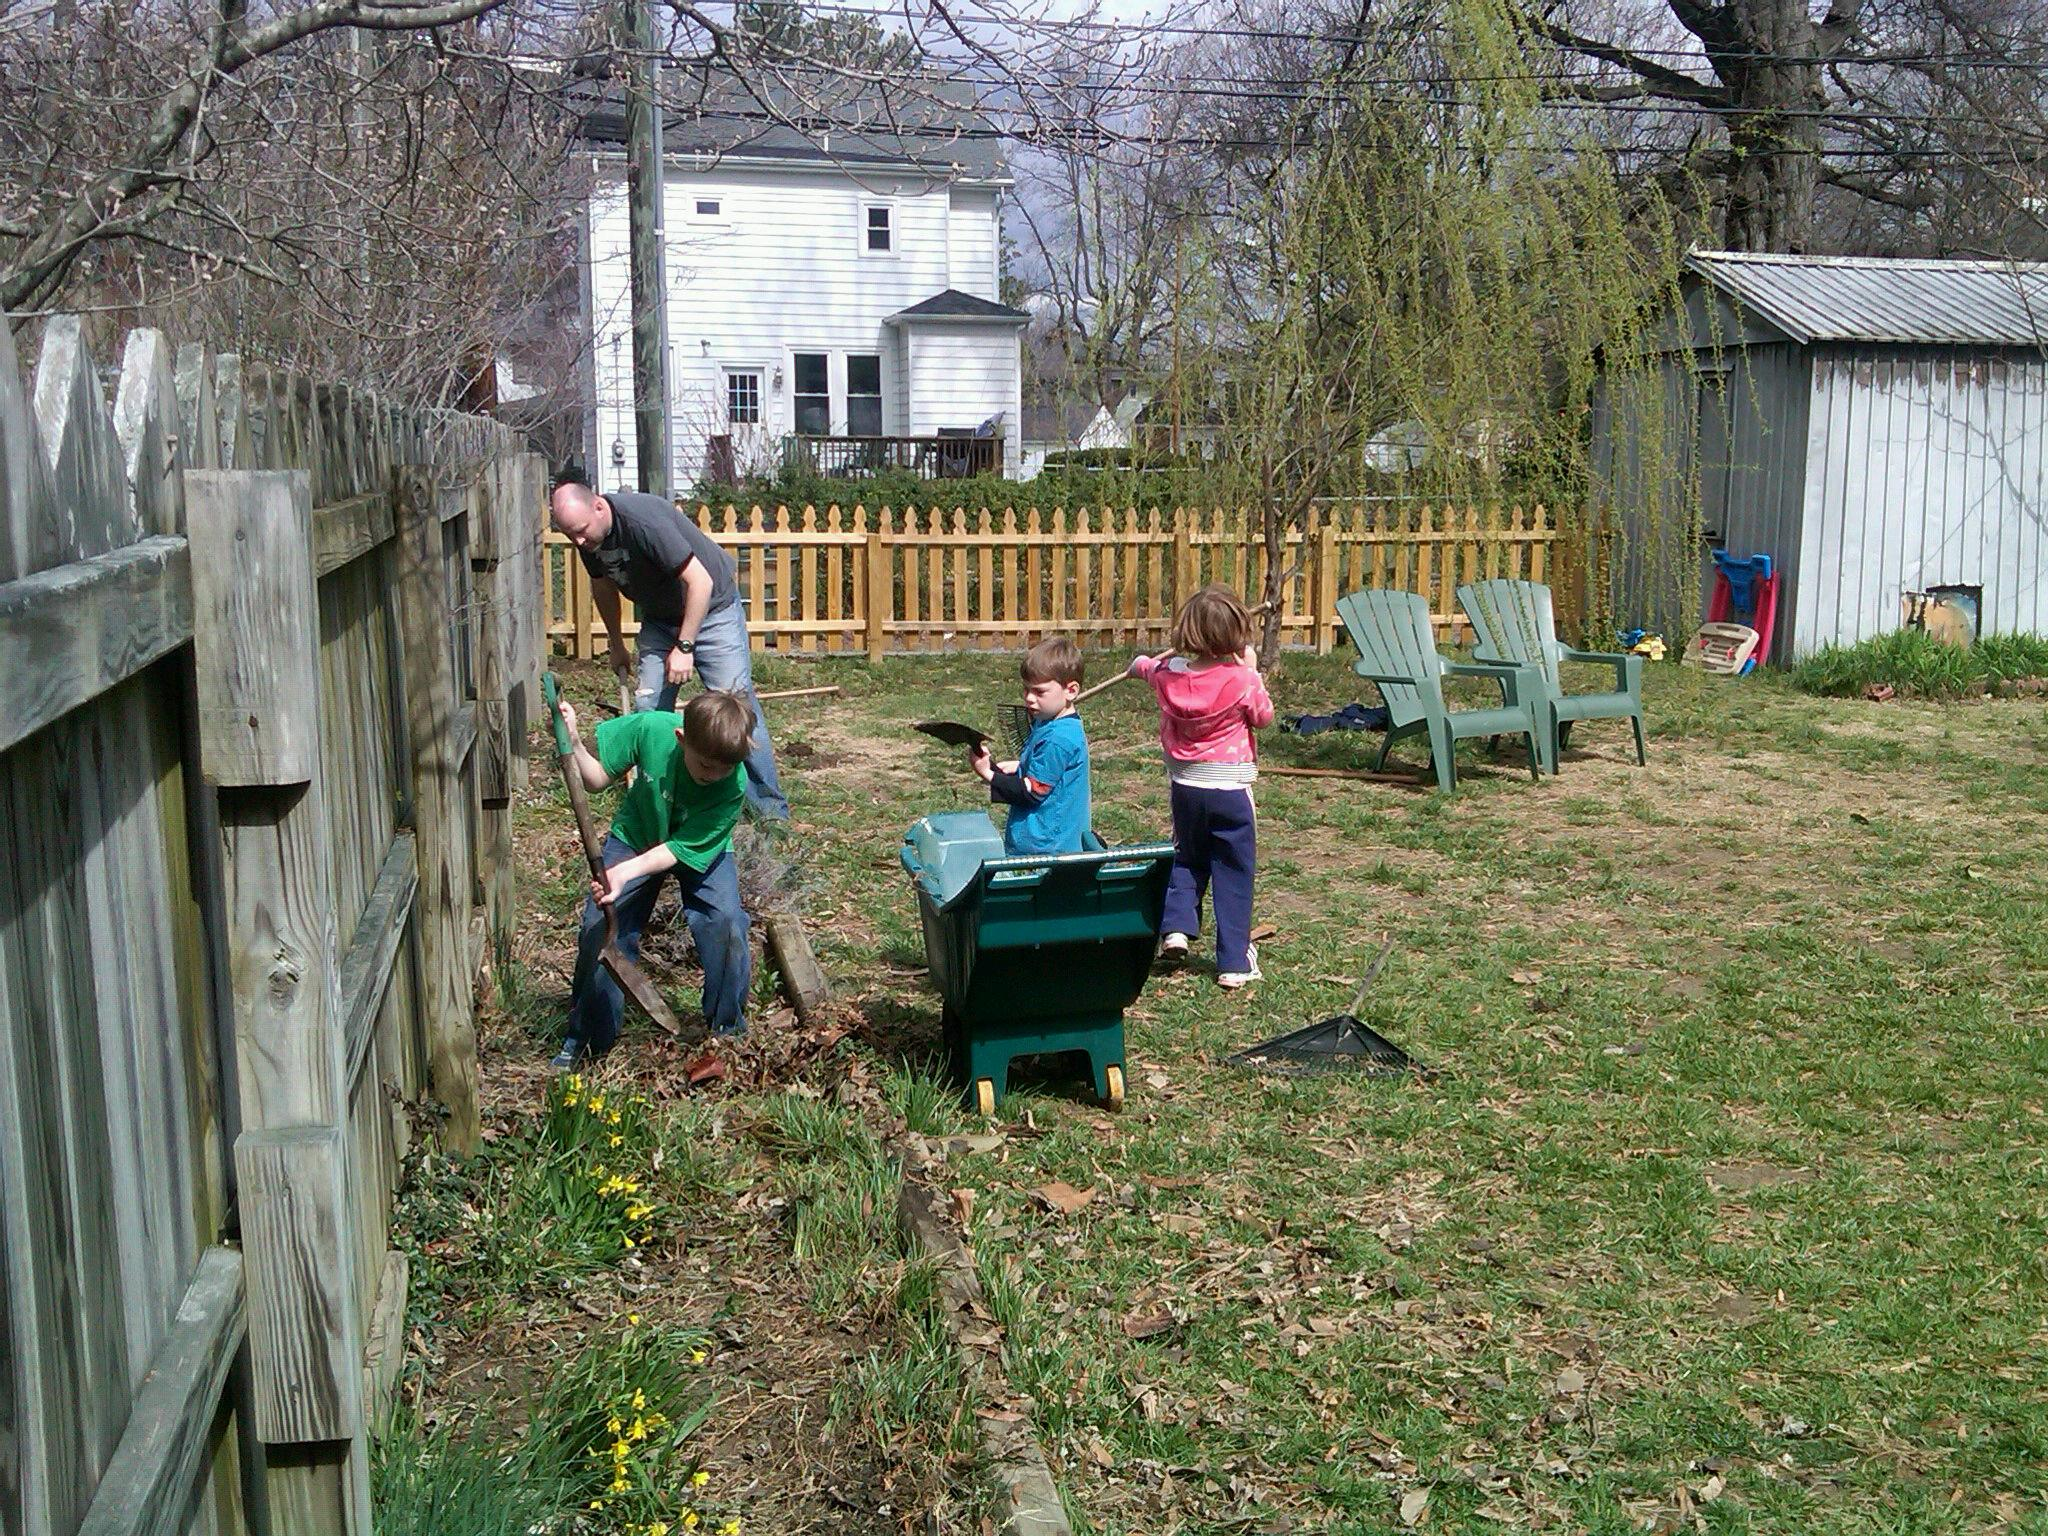 our run of the mill american backyard is making a case for baseball